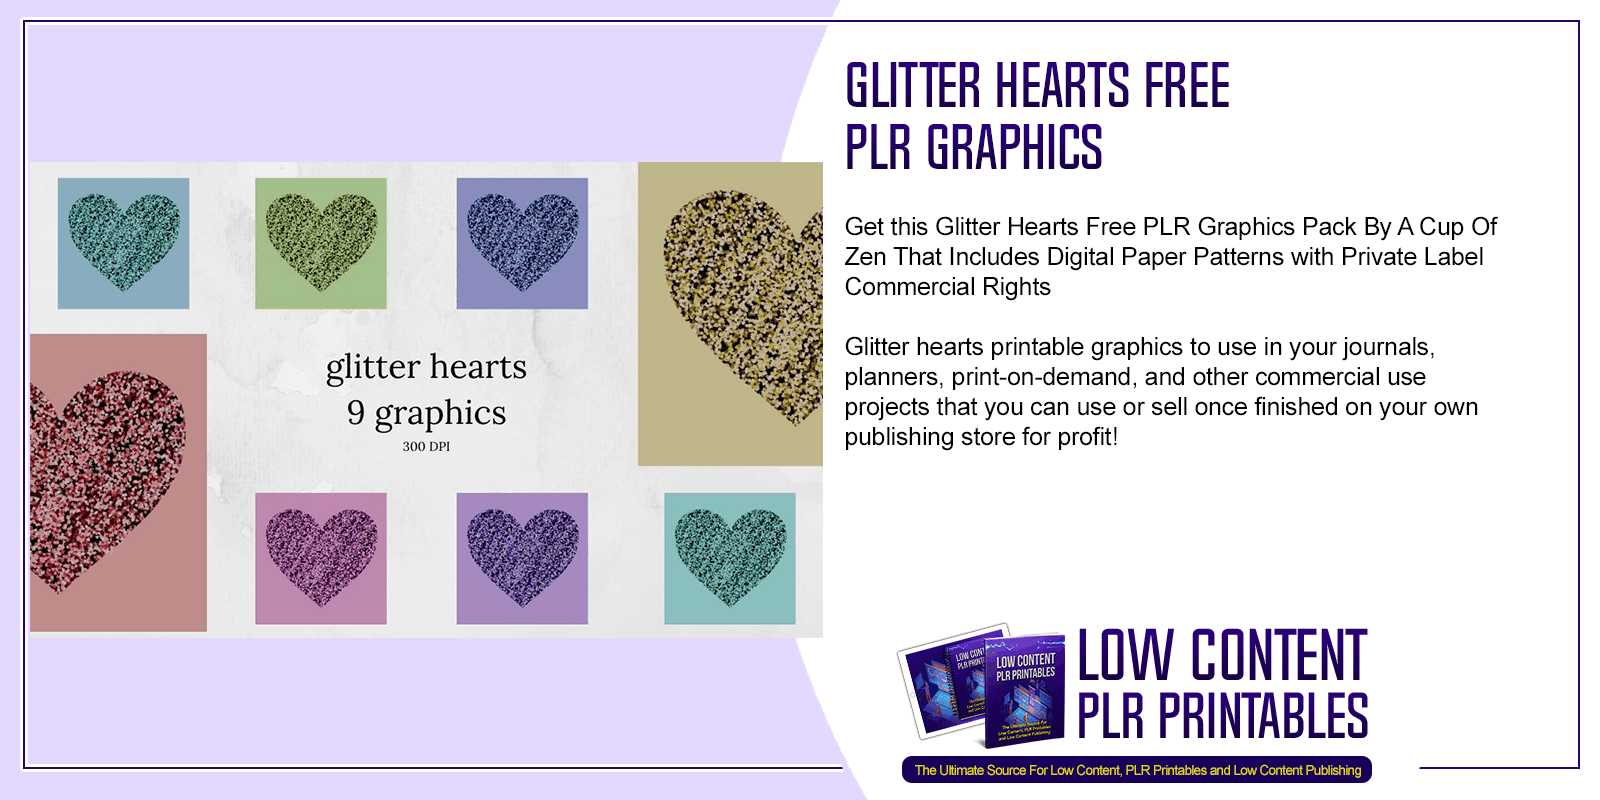 Glitter Hearts Free PLR Graphics